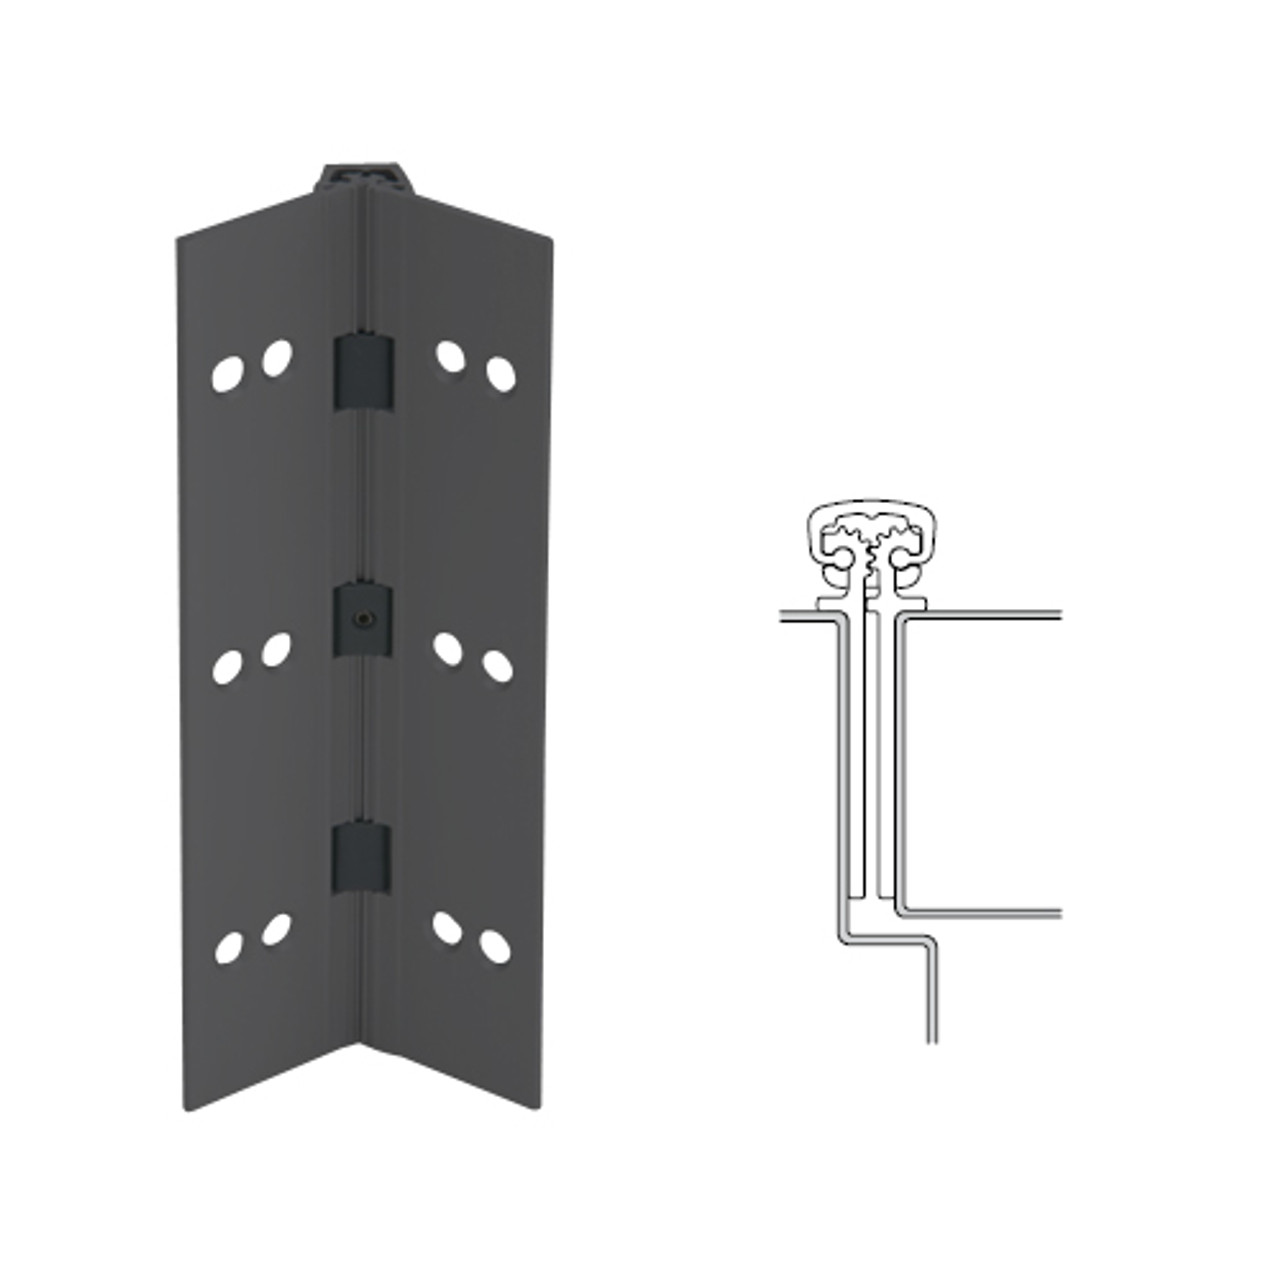 027XY-315AN-120 IVES Full Mortise Continuous Geared Hinges in Anodized Black